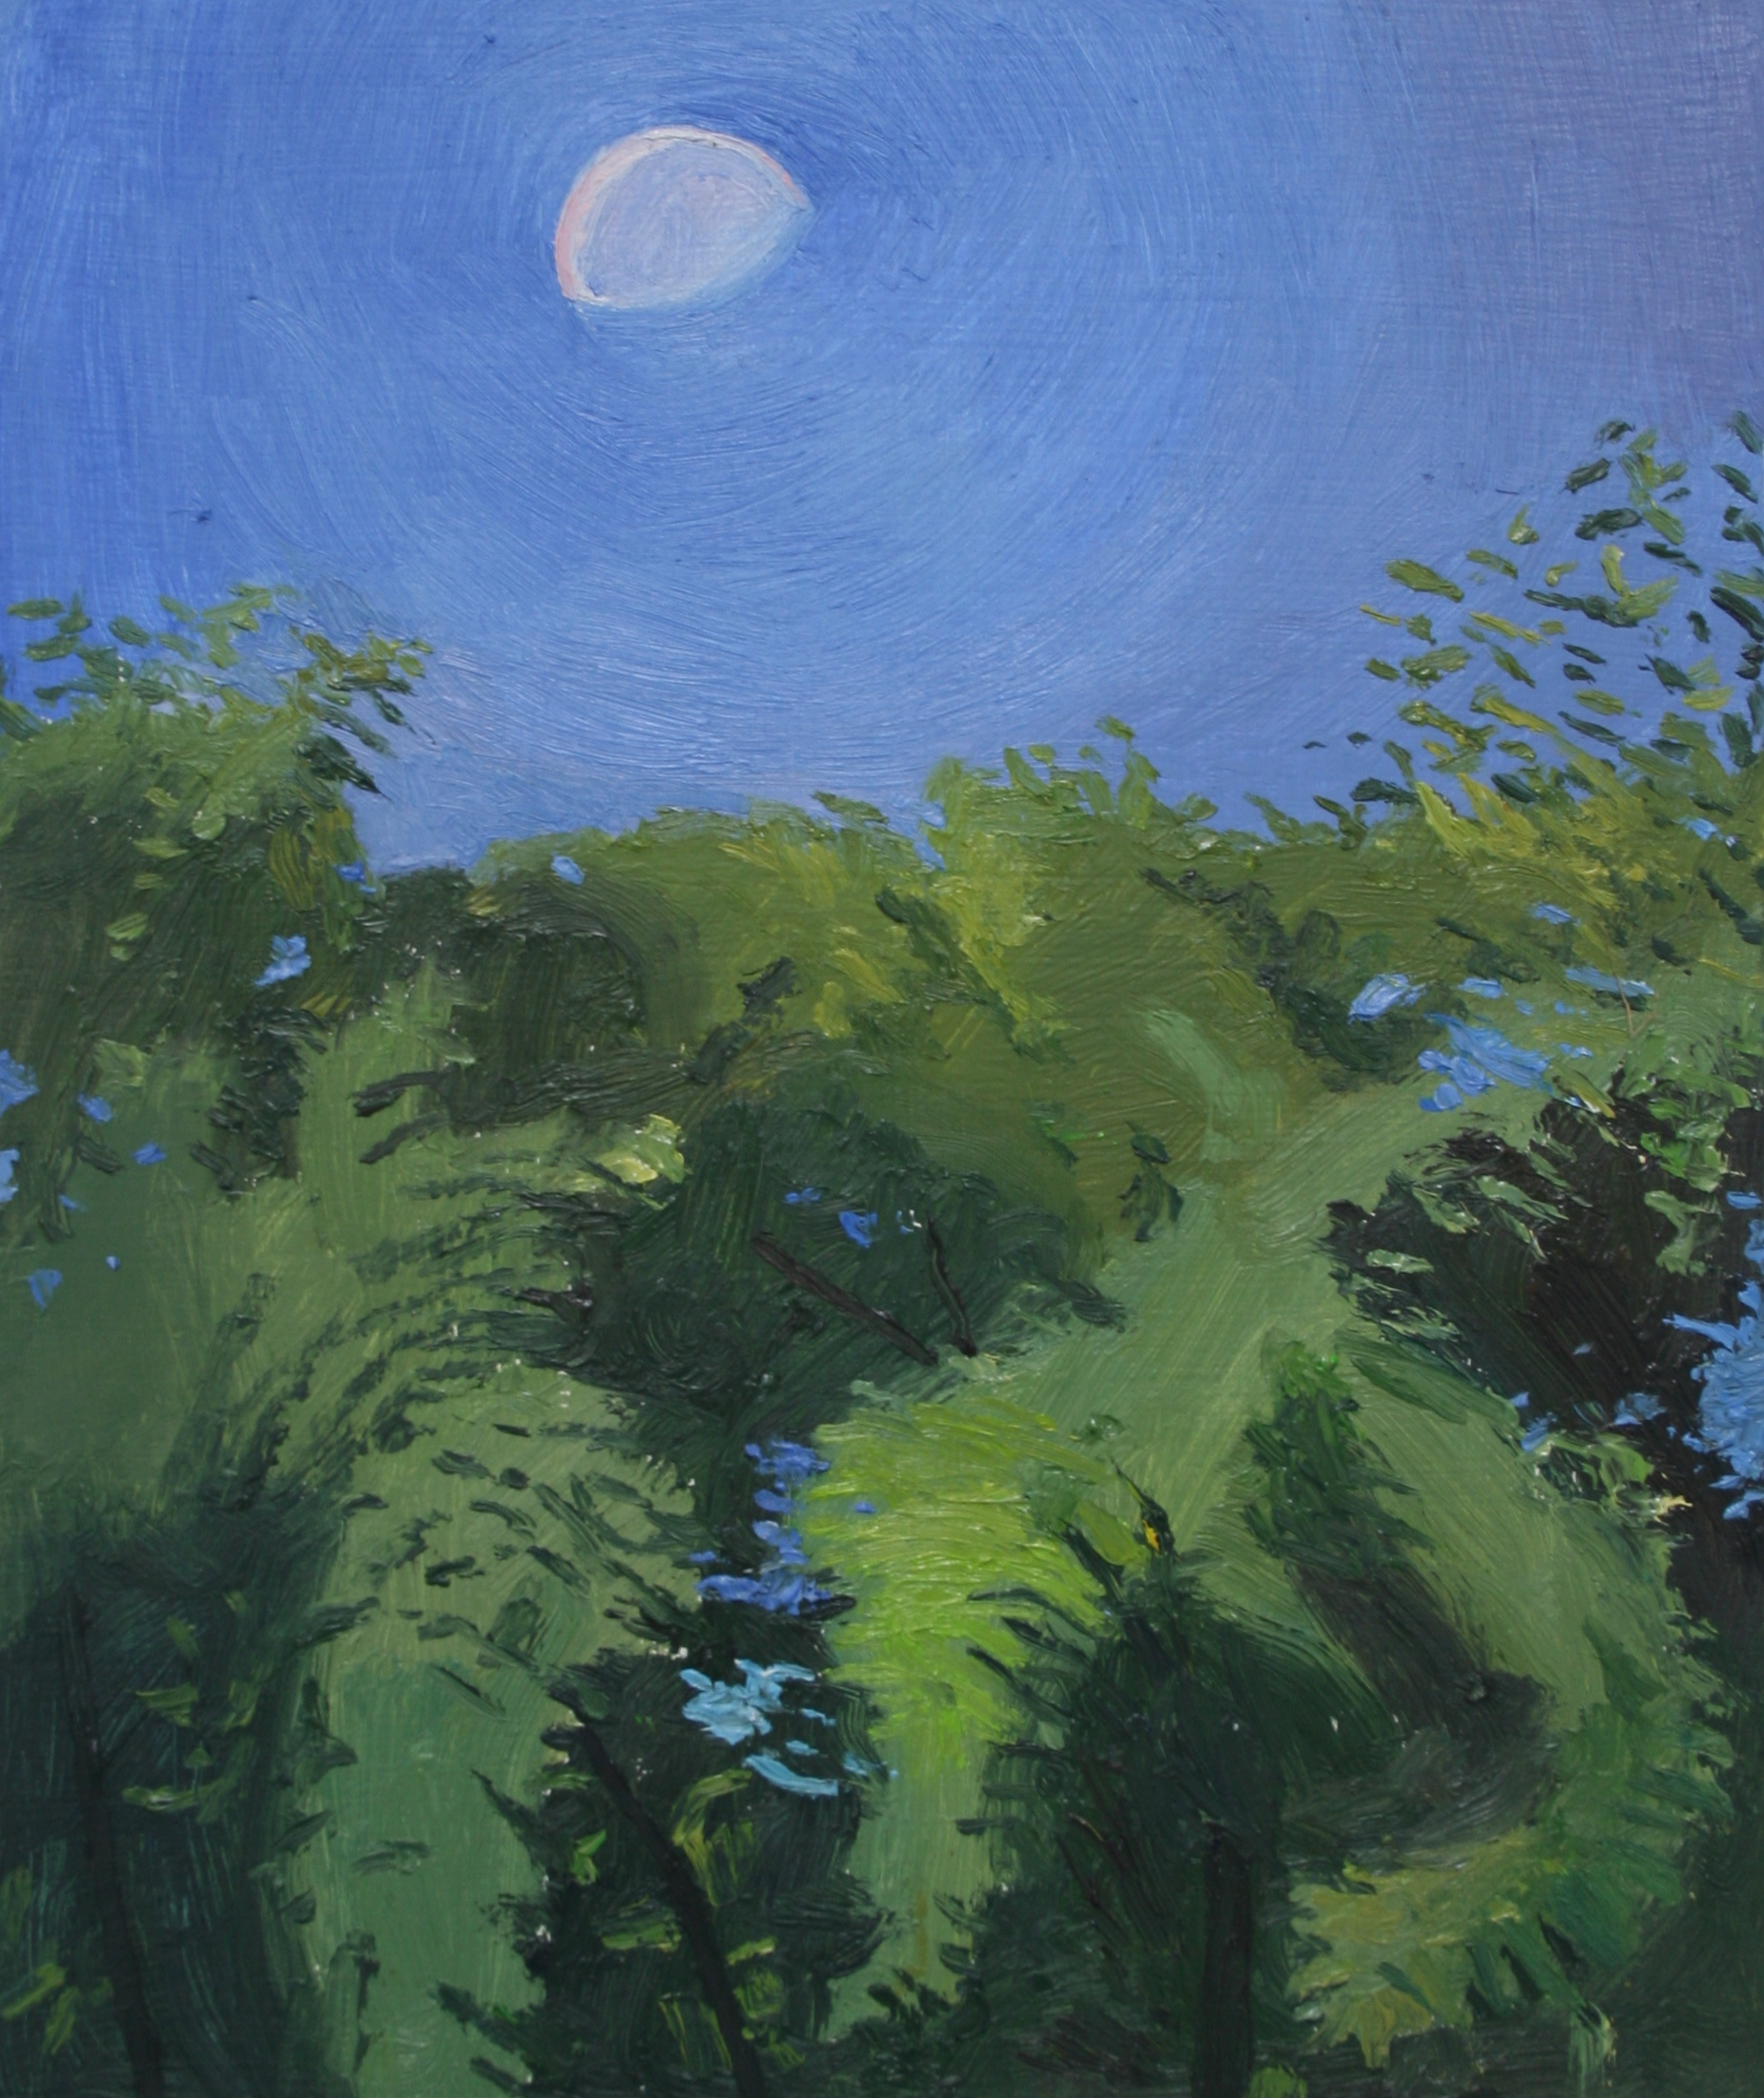 Moon during the day, Oil on panel, 9 x 7.5 in, 2016